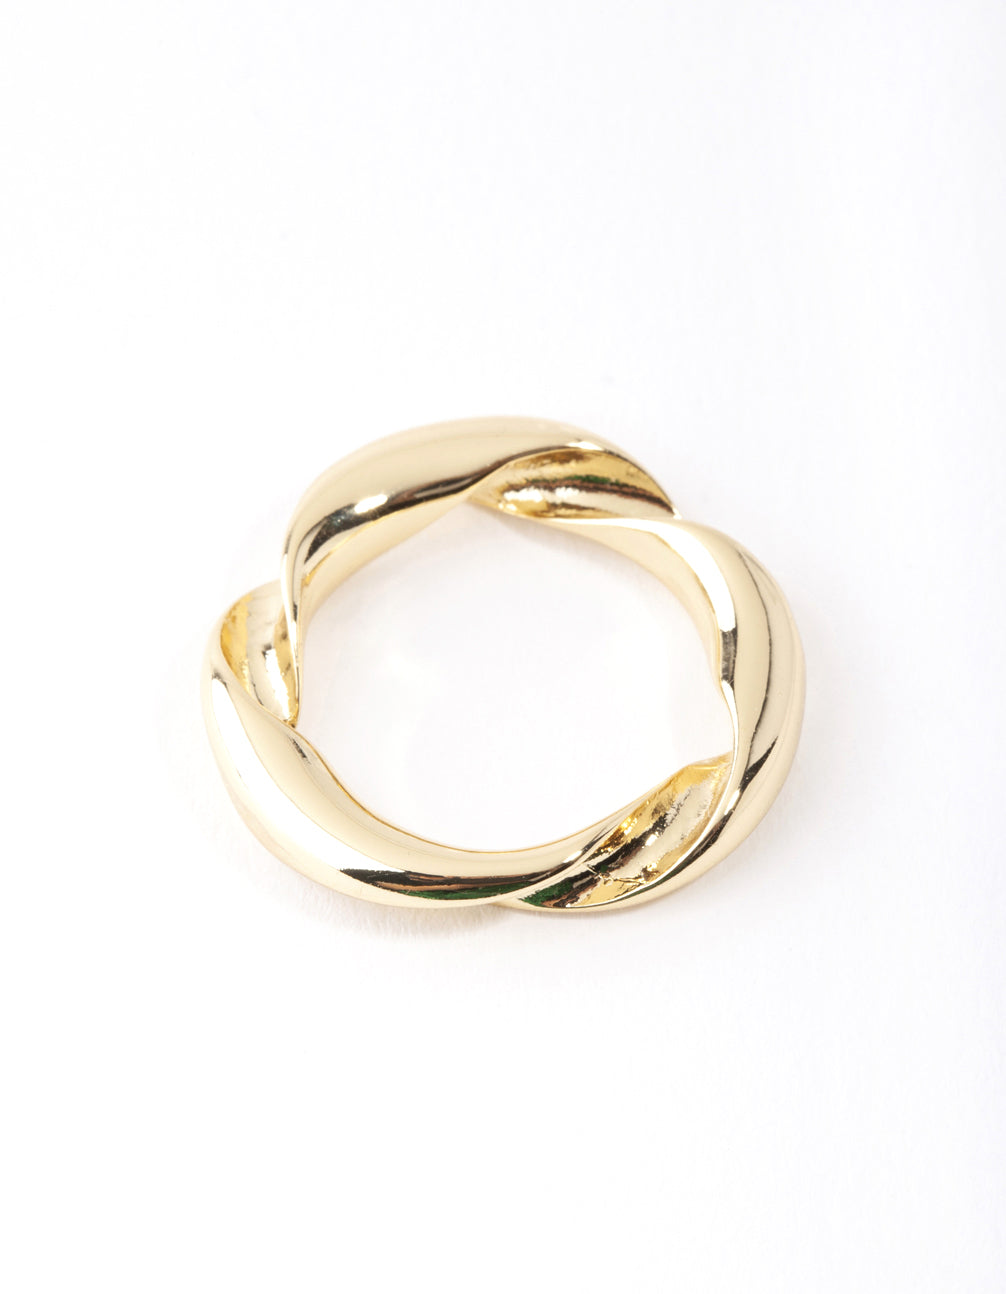 Real Gold Plated Twist Band Ring